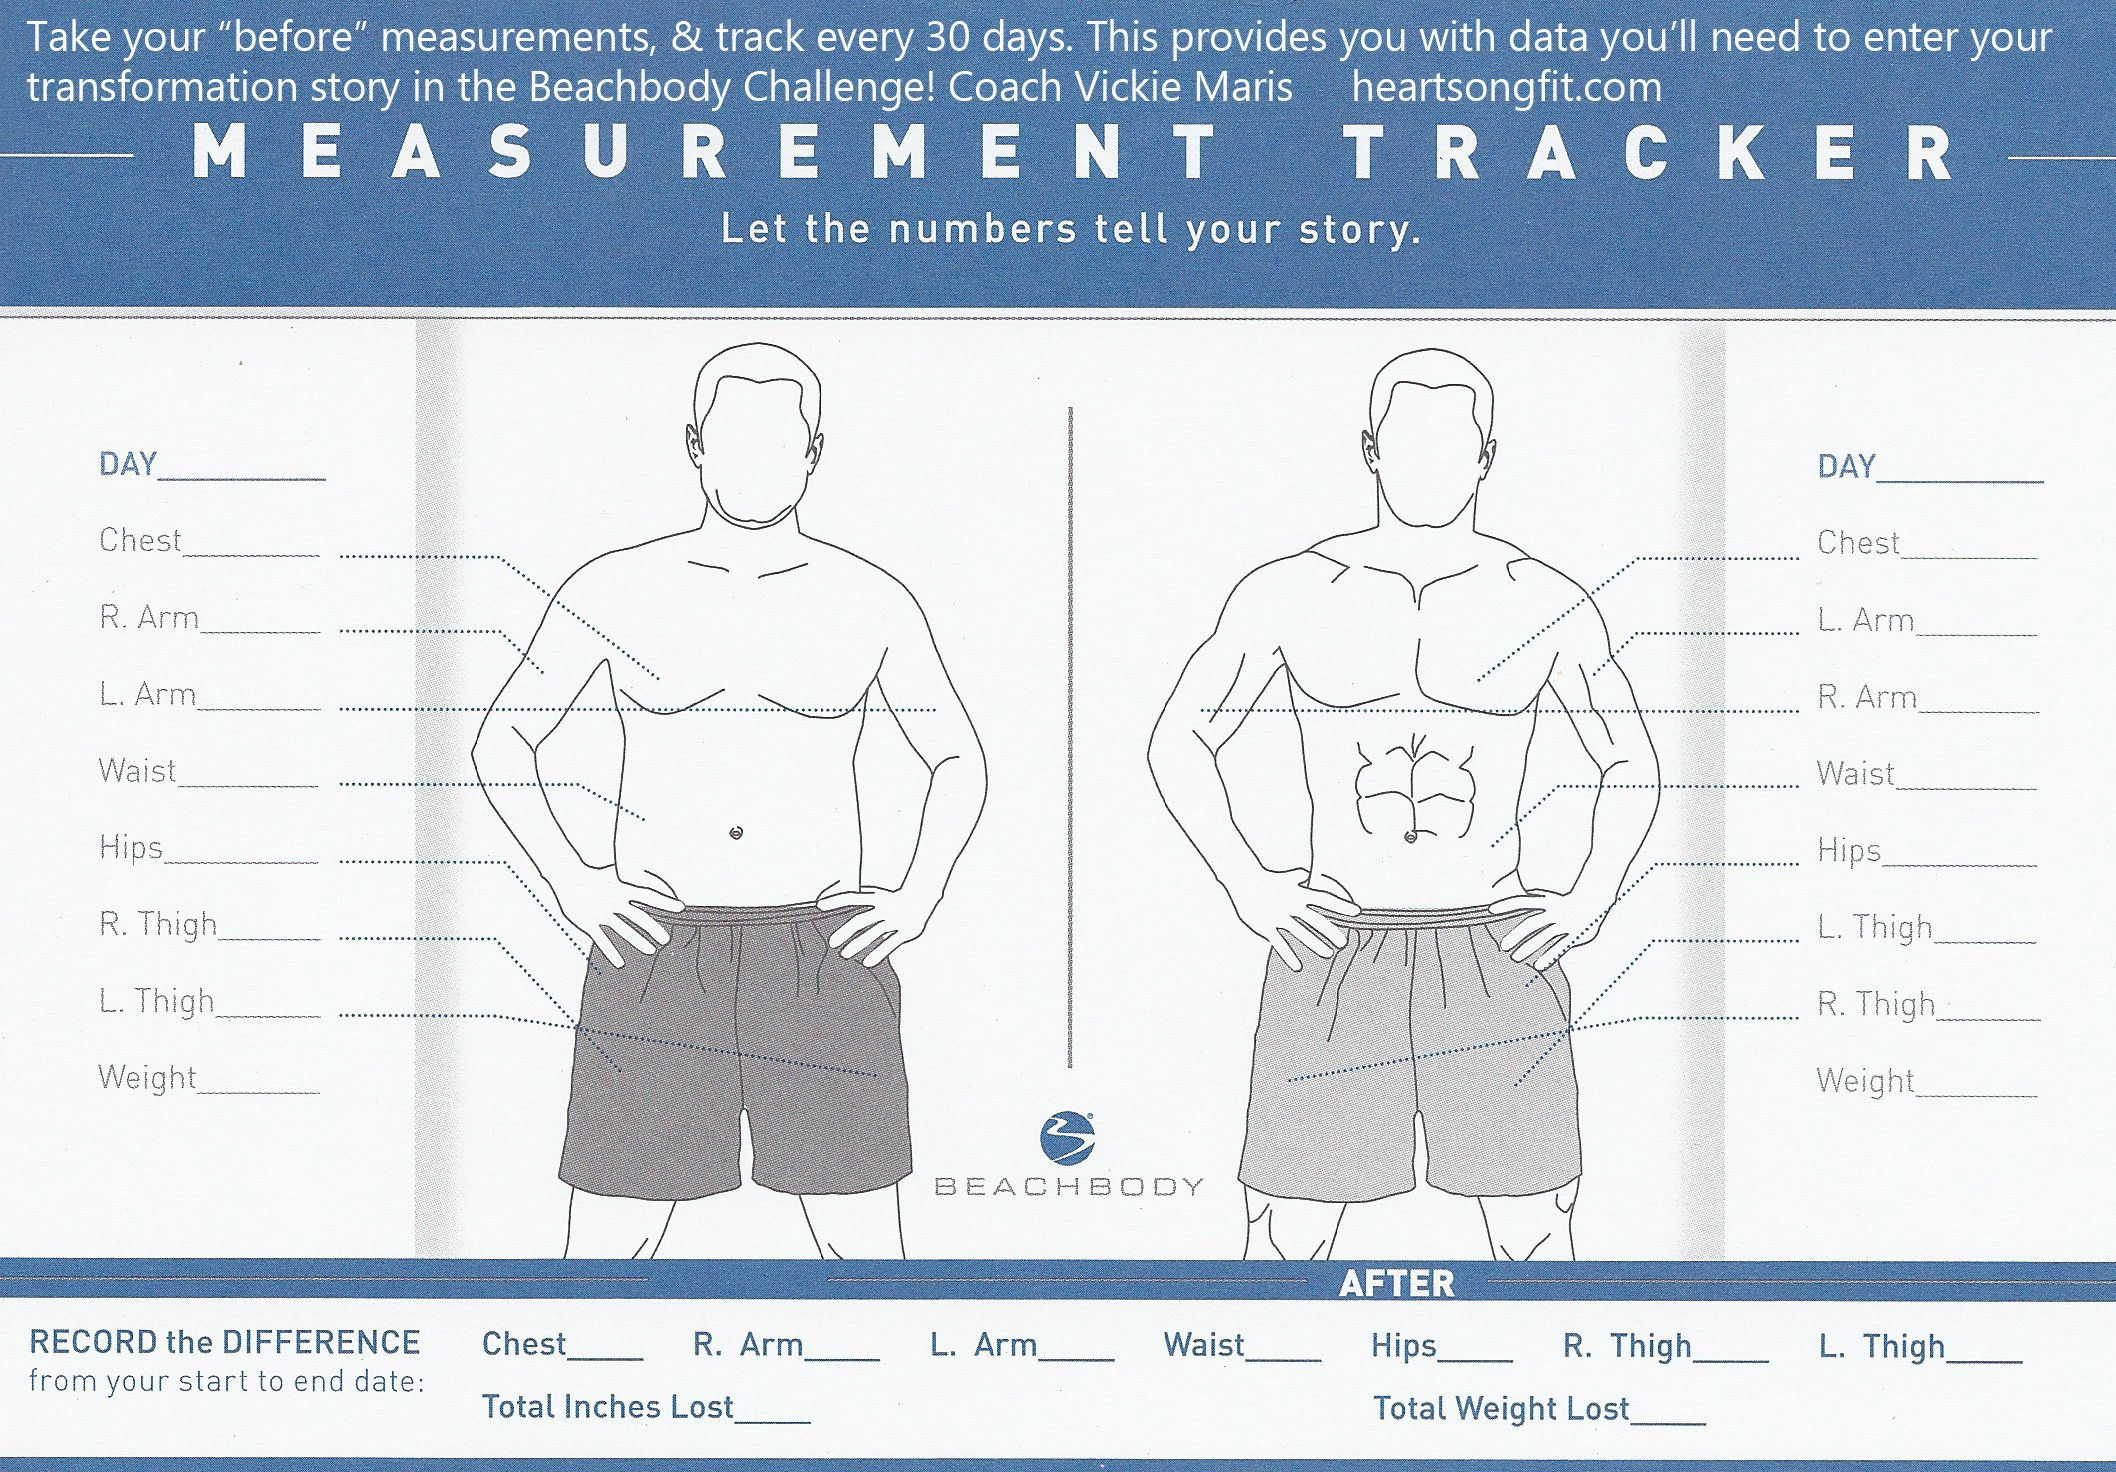 The Male Version Of The Measurement Tracker For Keeping